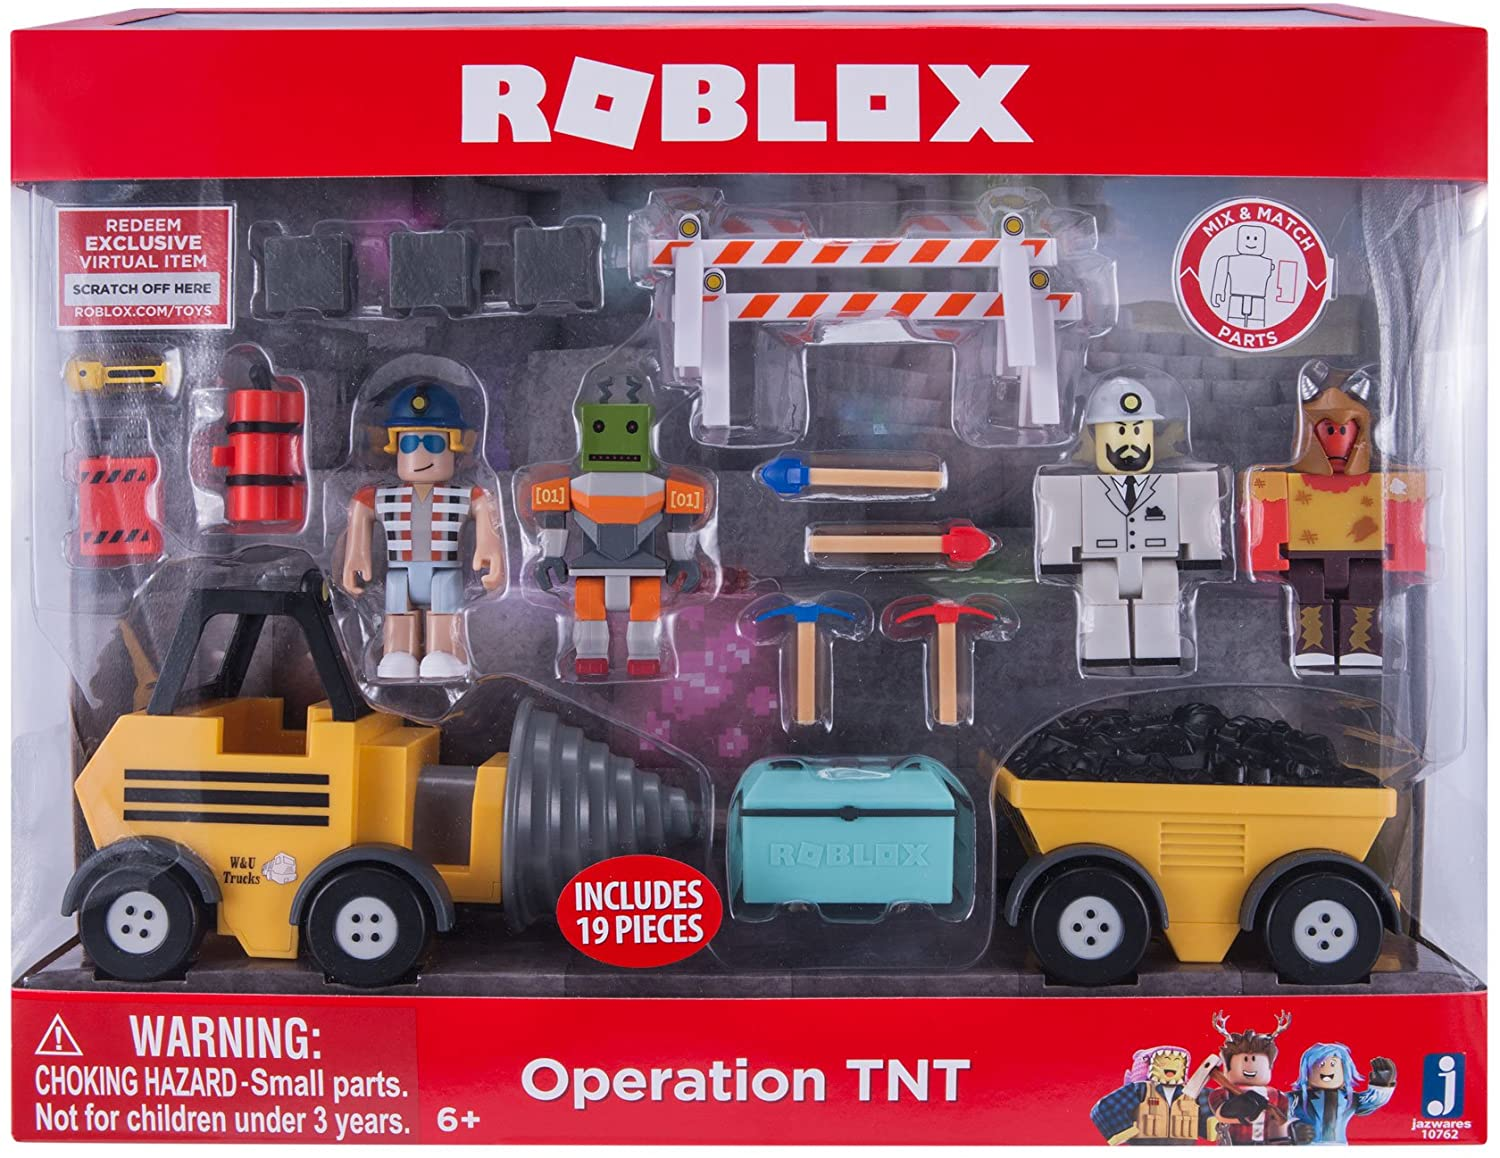 Citizens Of Roblox Hard Times Henry Unboxing More Robloxtoys And The Code Item For Roblox Youtube Amazon Com Roblox Action Collection Operation Tnt Playset Includes Exclusive Virtual Item Toys Games